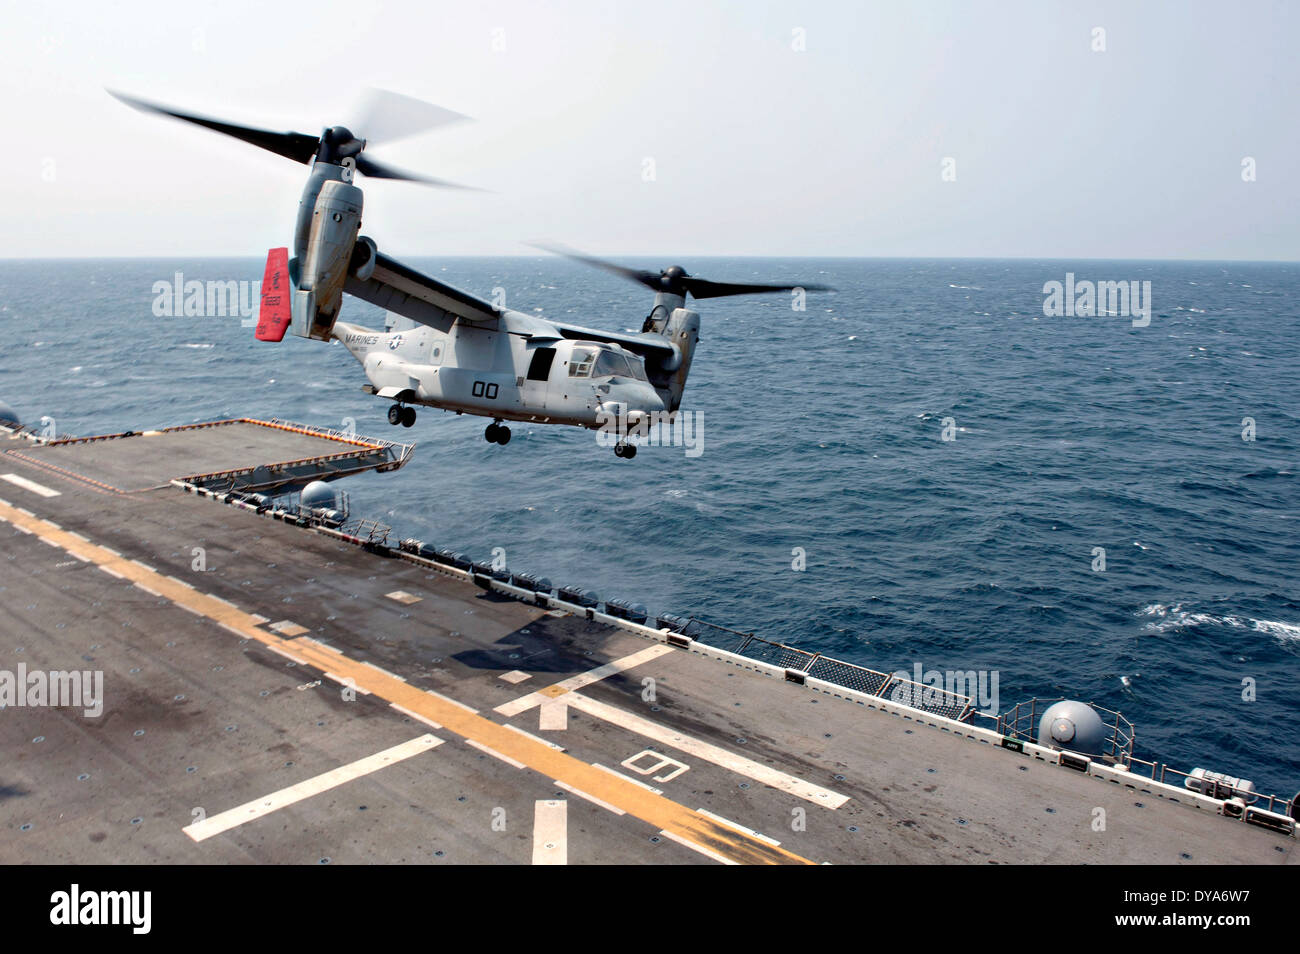 A US Marine MV-22 Osprey tiltrotor aircraft takes off from the flight deck of the amphibious assault ship USS Bonhomme Richard April 8, 2014 in the East China Sea. Stock Photo